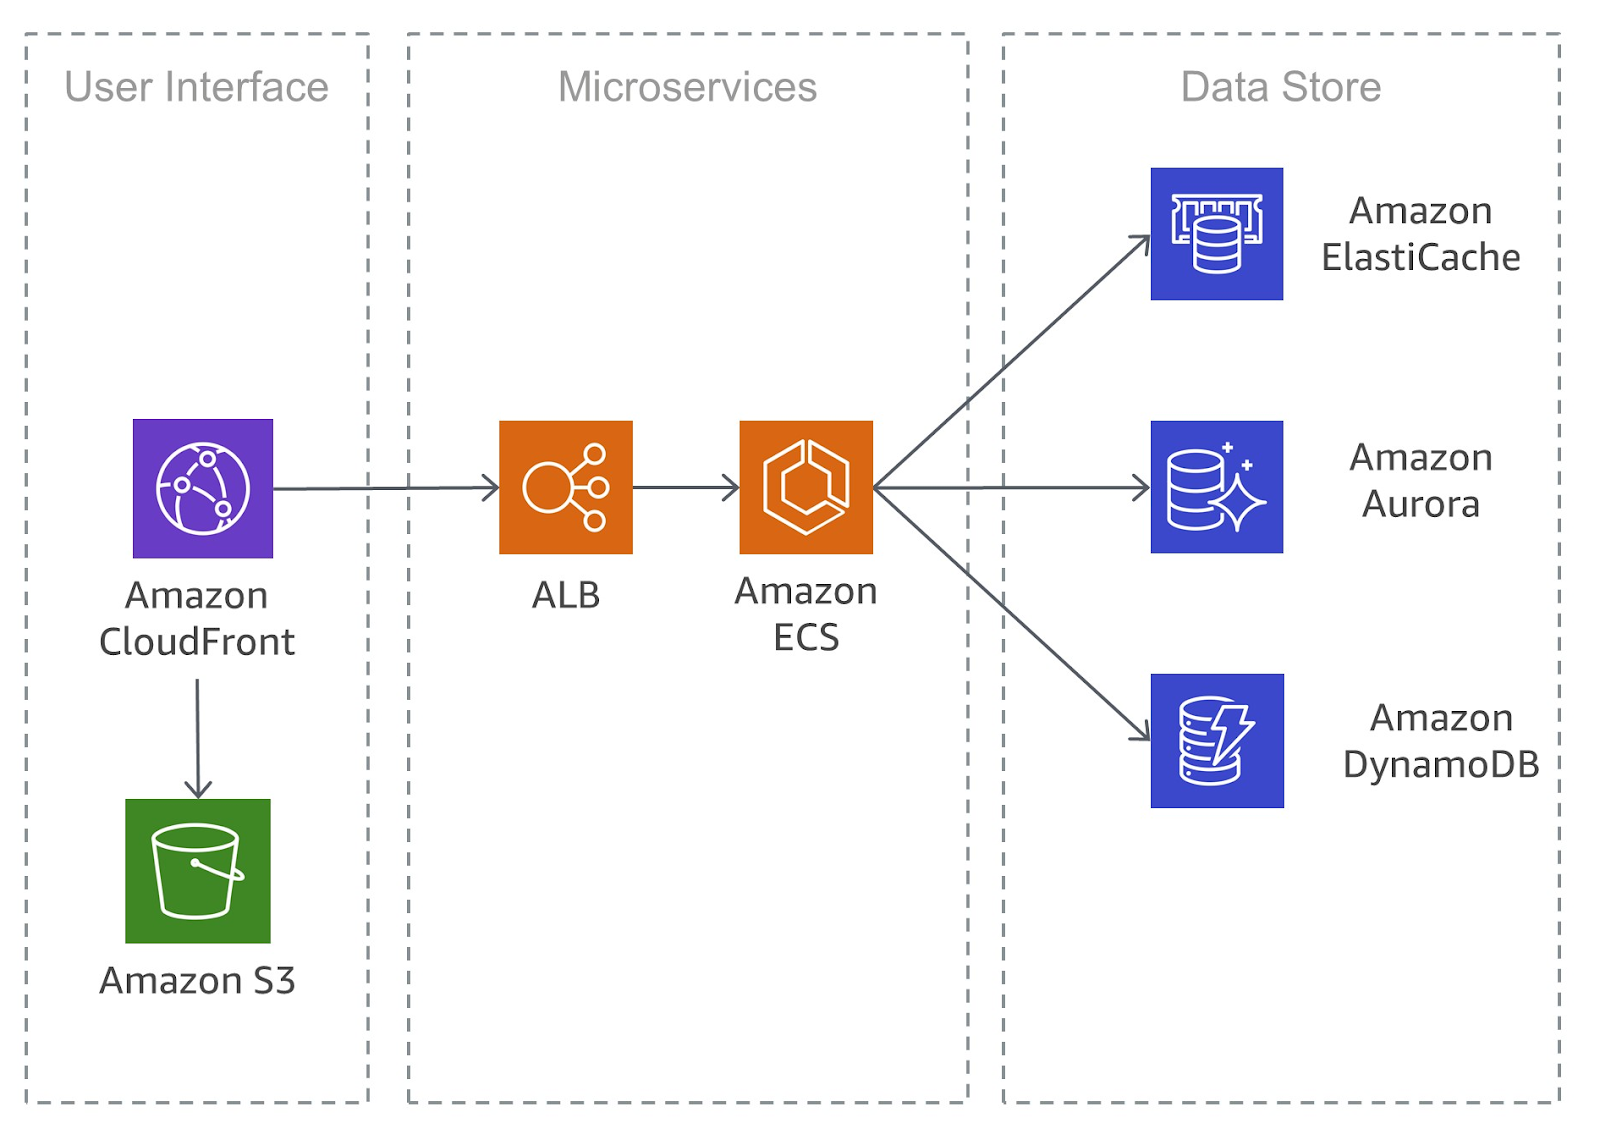 Typical customer-facing application with microservices on AWS